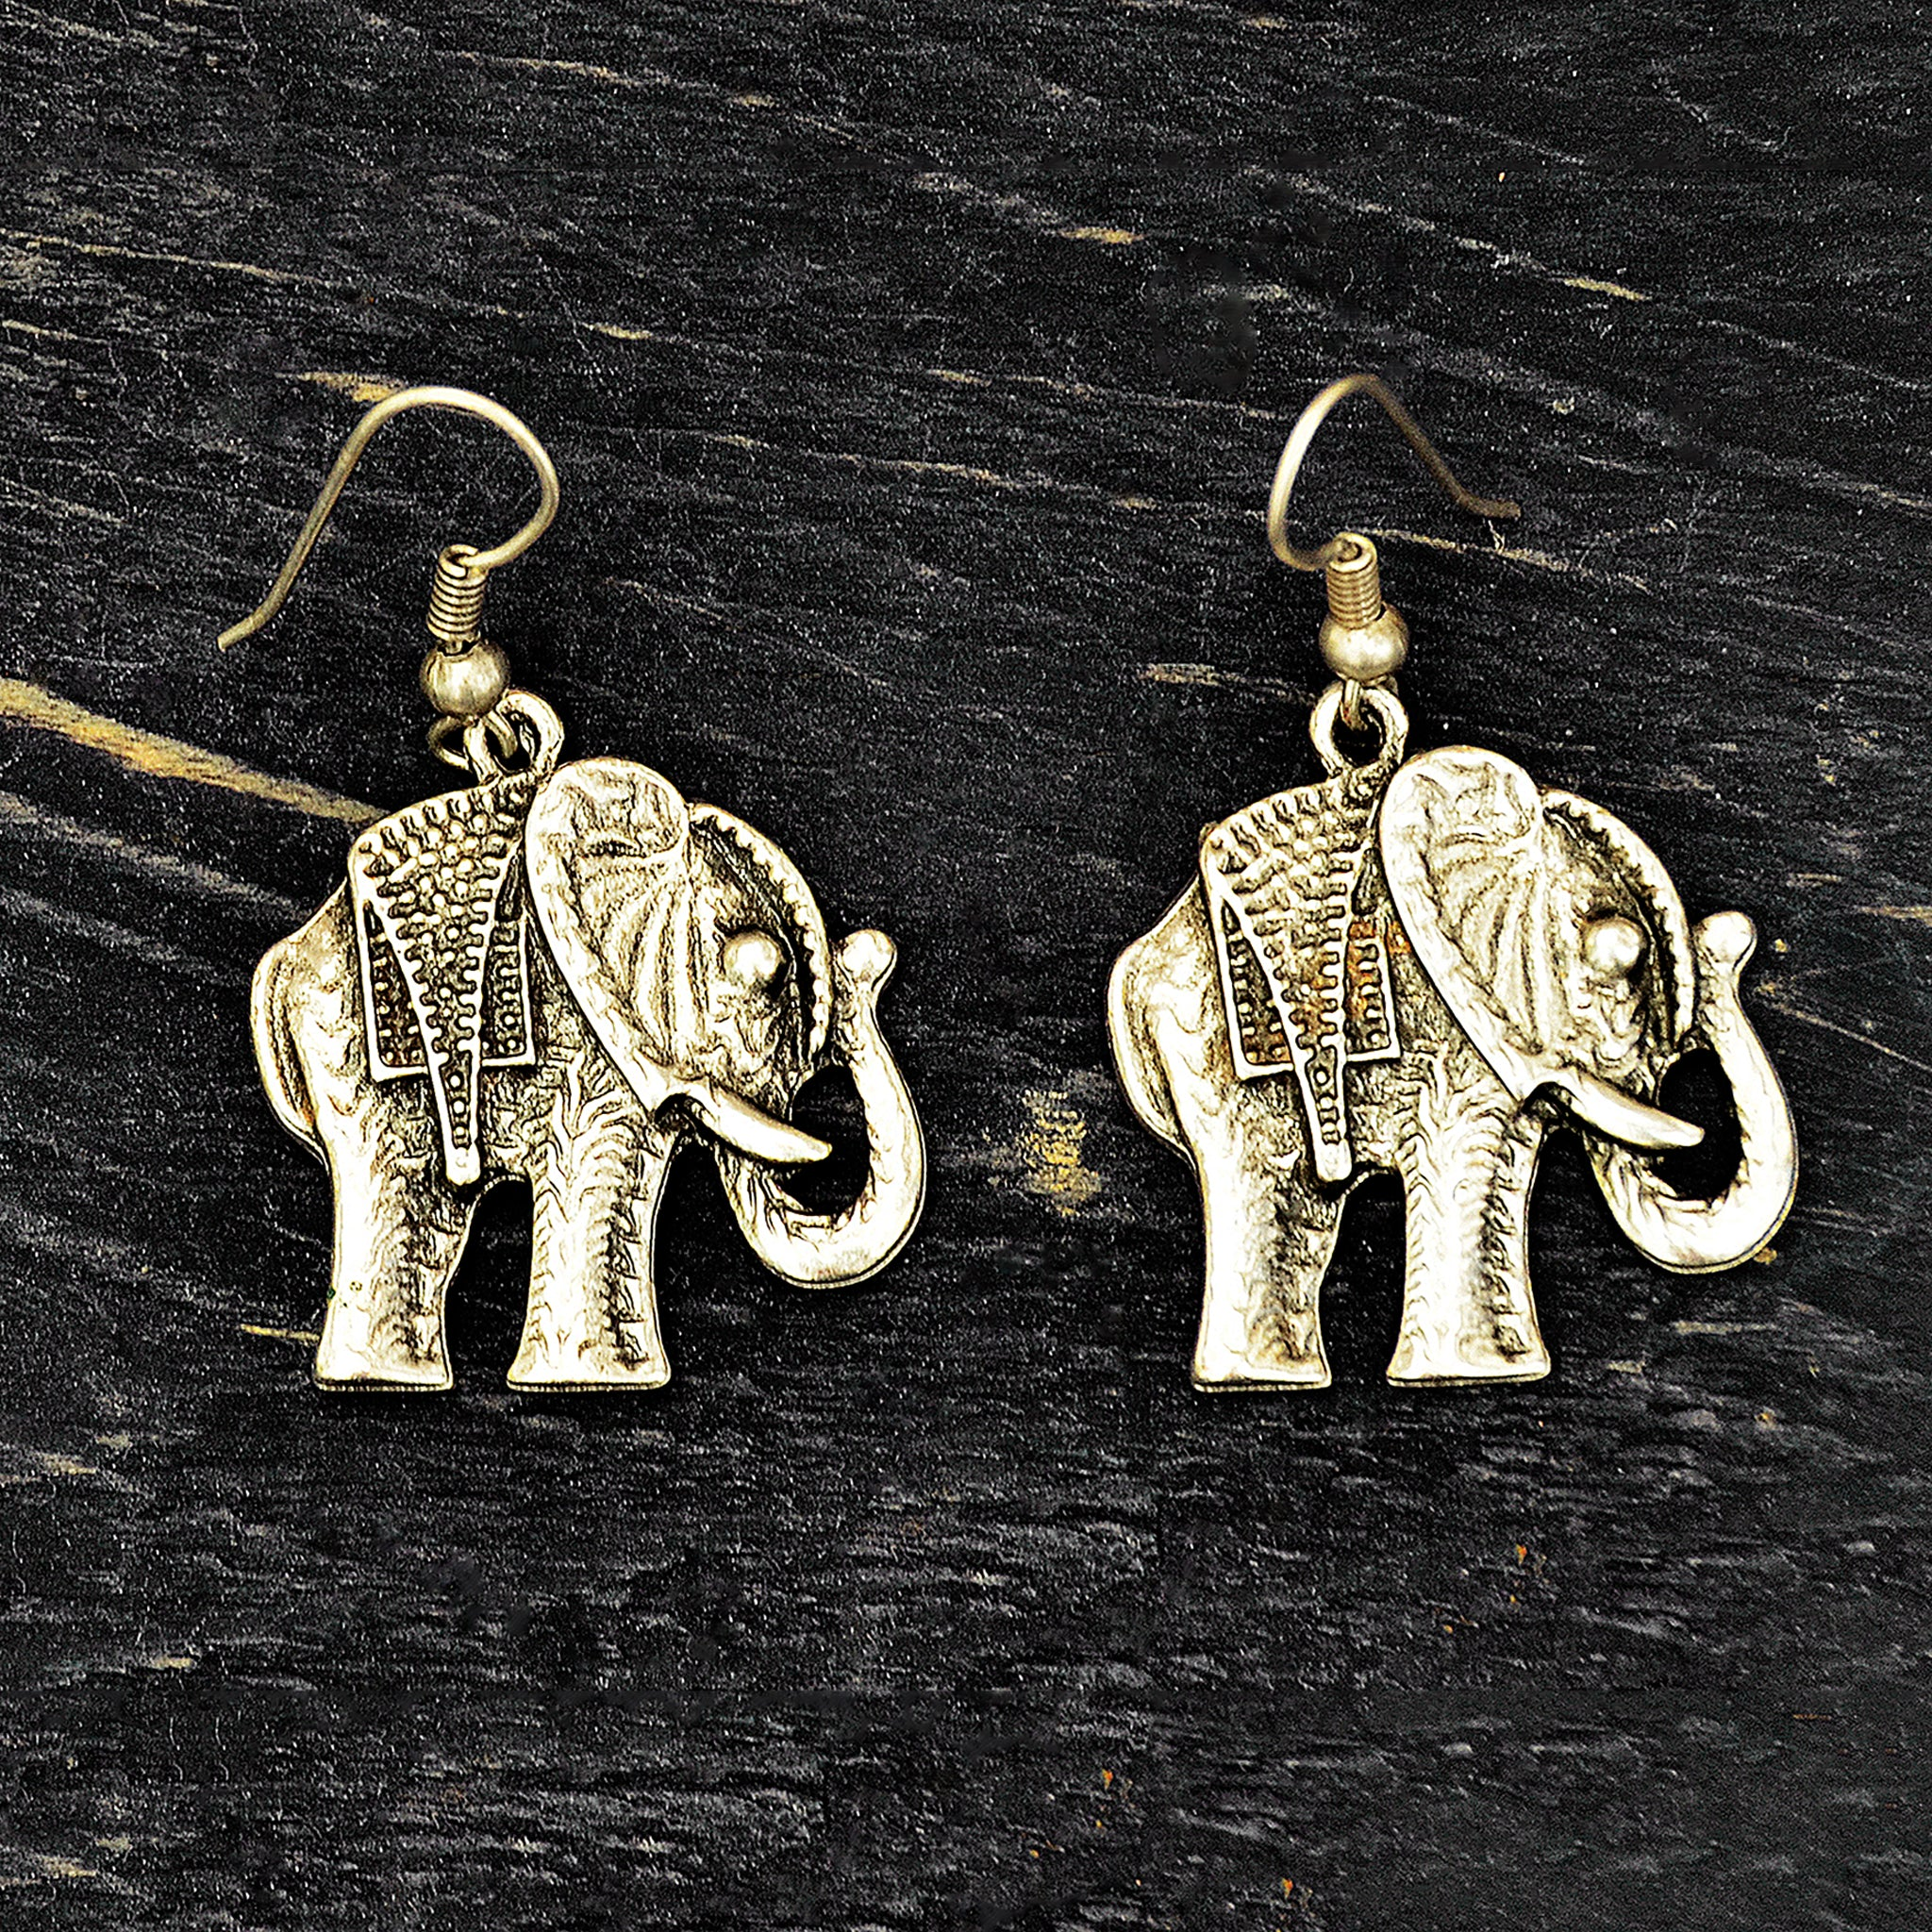 Small silver elephant earrings